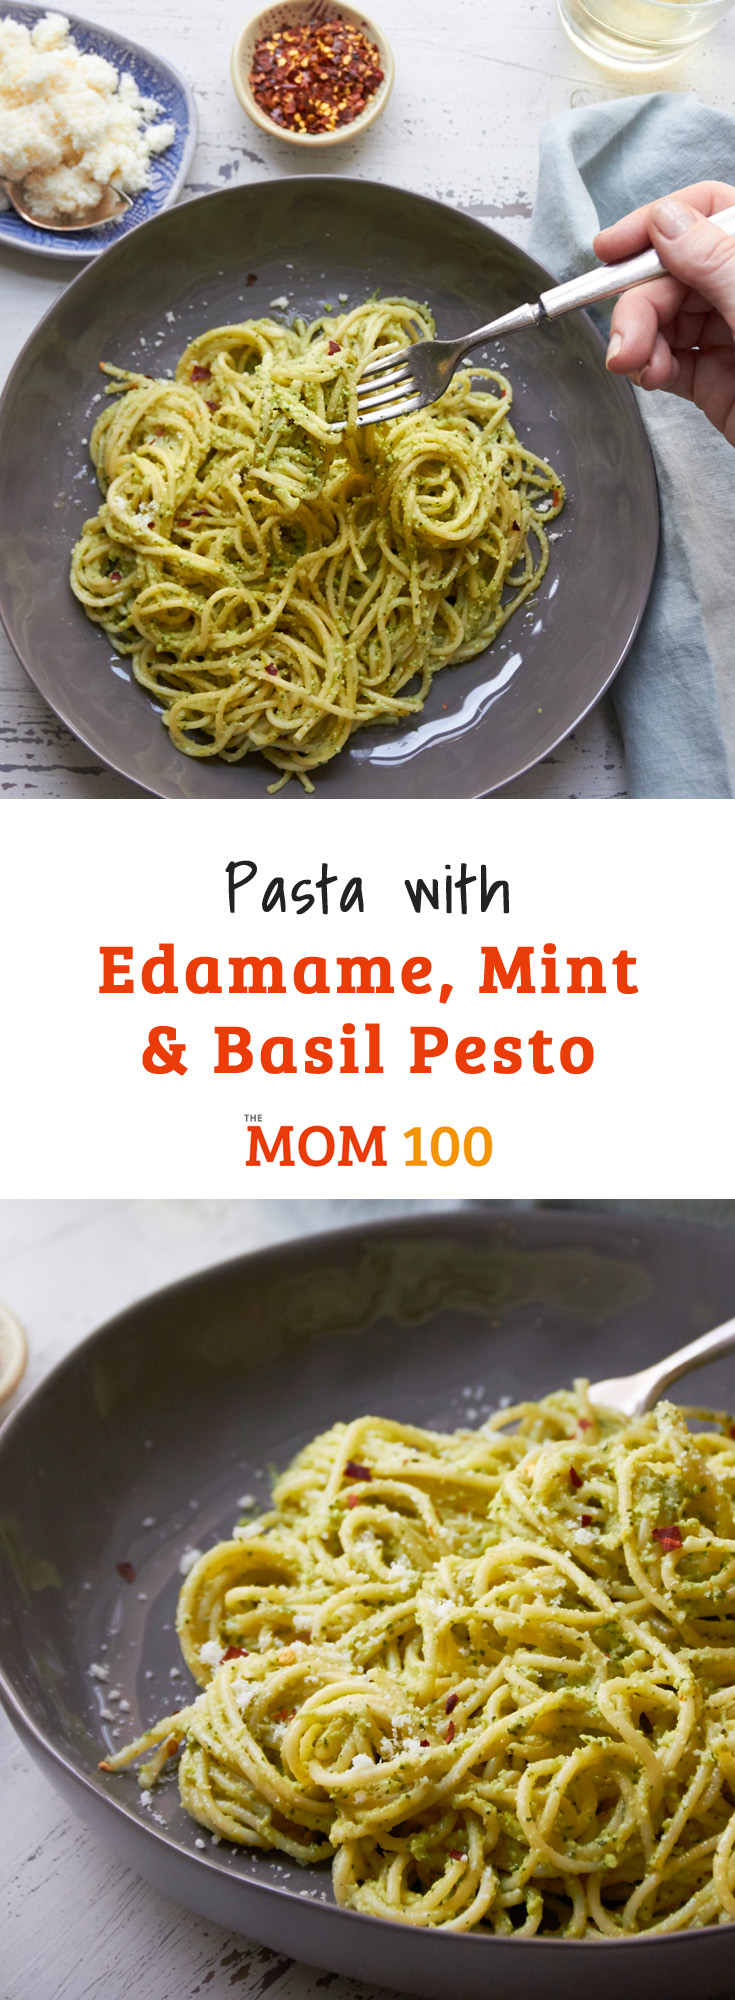 Pasta with Edamame, Mint and Basil Pesto. A simple vegetarian pasta tossed with a flavorful pesto made with fresh herbs and protein-packed edamame.